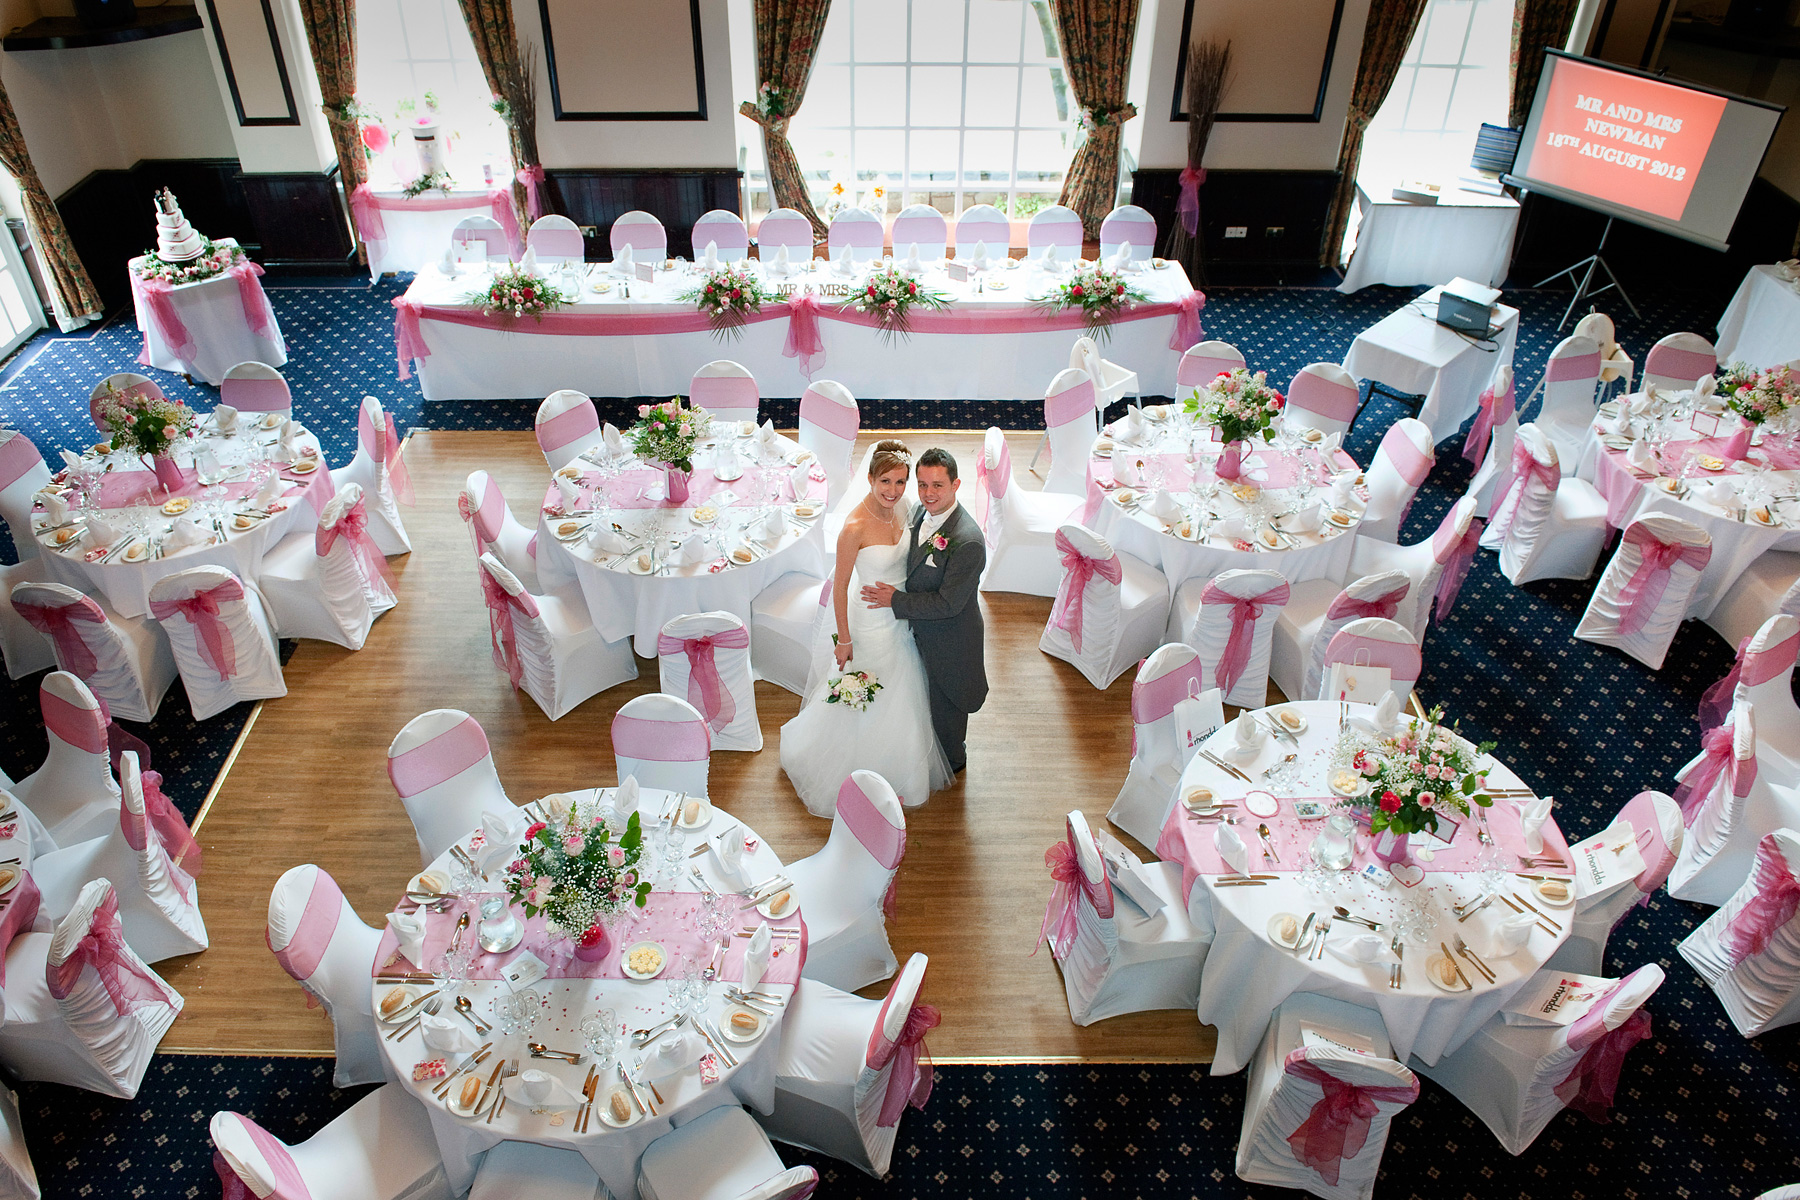 Rhondda-Heritage-Park-Hotel-wedding-Breakfast-tables-bride-and-groom-wedding-south-wales-wedding-photographers-pontypridd